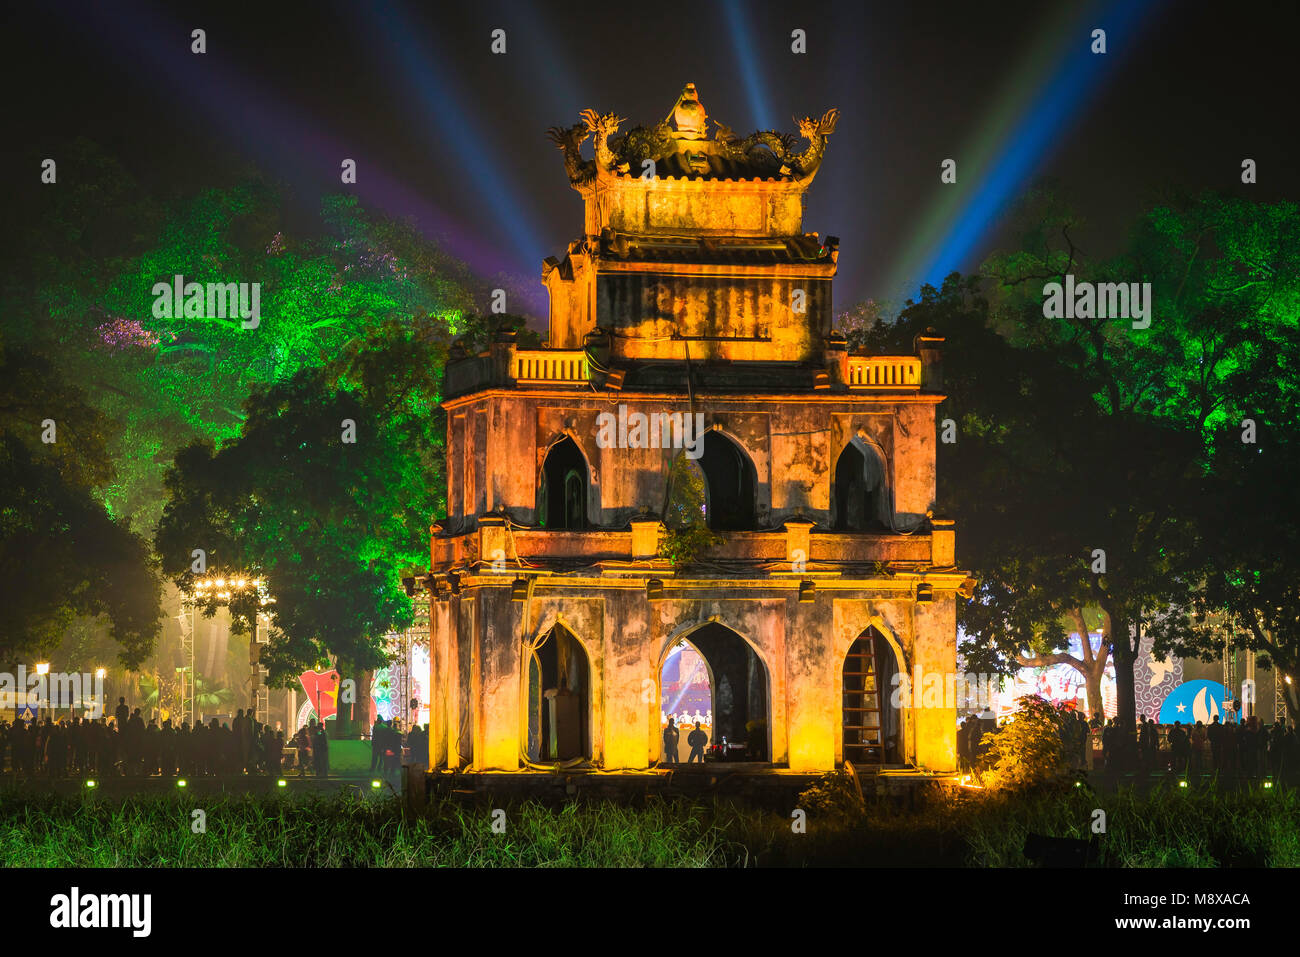 Hanoi Turtle Tower, the old pavilion known as Turtle - or Tortoise - Tower on Hoan Kiem Lake lit by floodlights - Stock Image